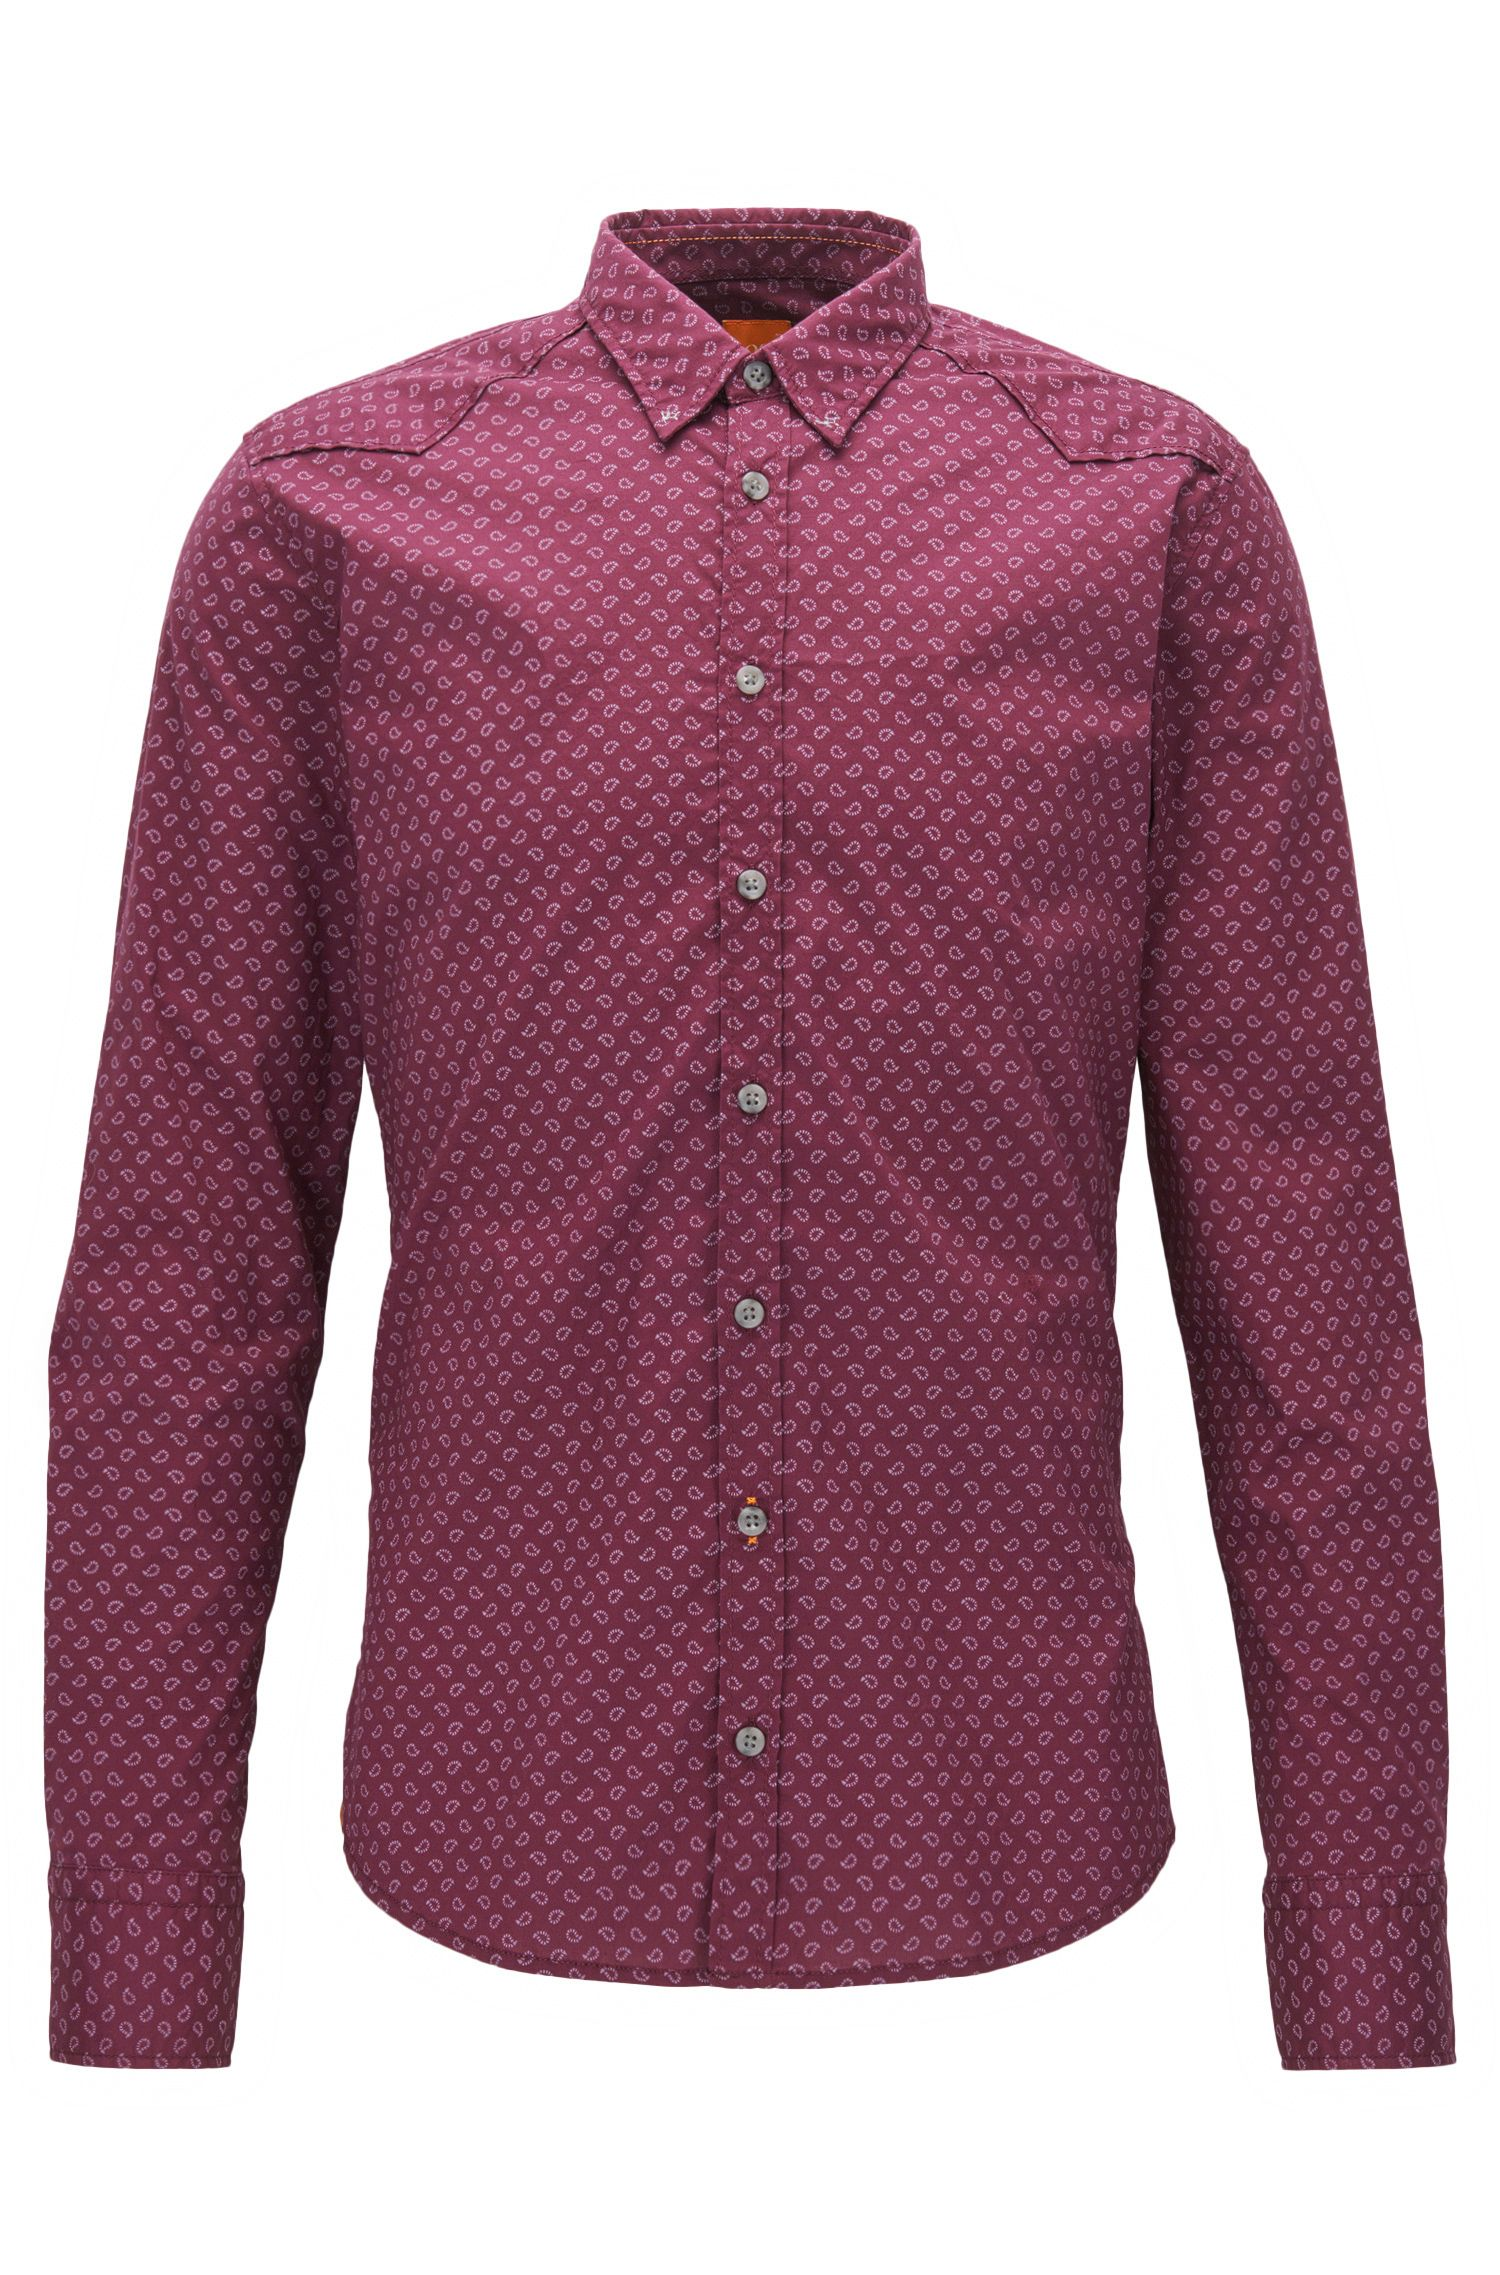 Paisley Stretch Cotton Button Down Shirt with Stretch Tailoring, Extra Slim Fit | Chill